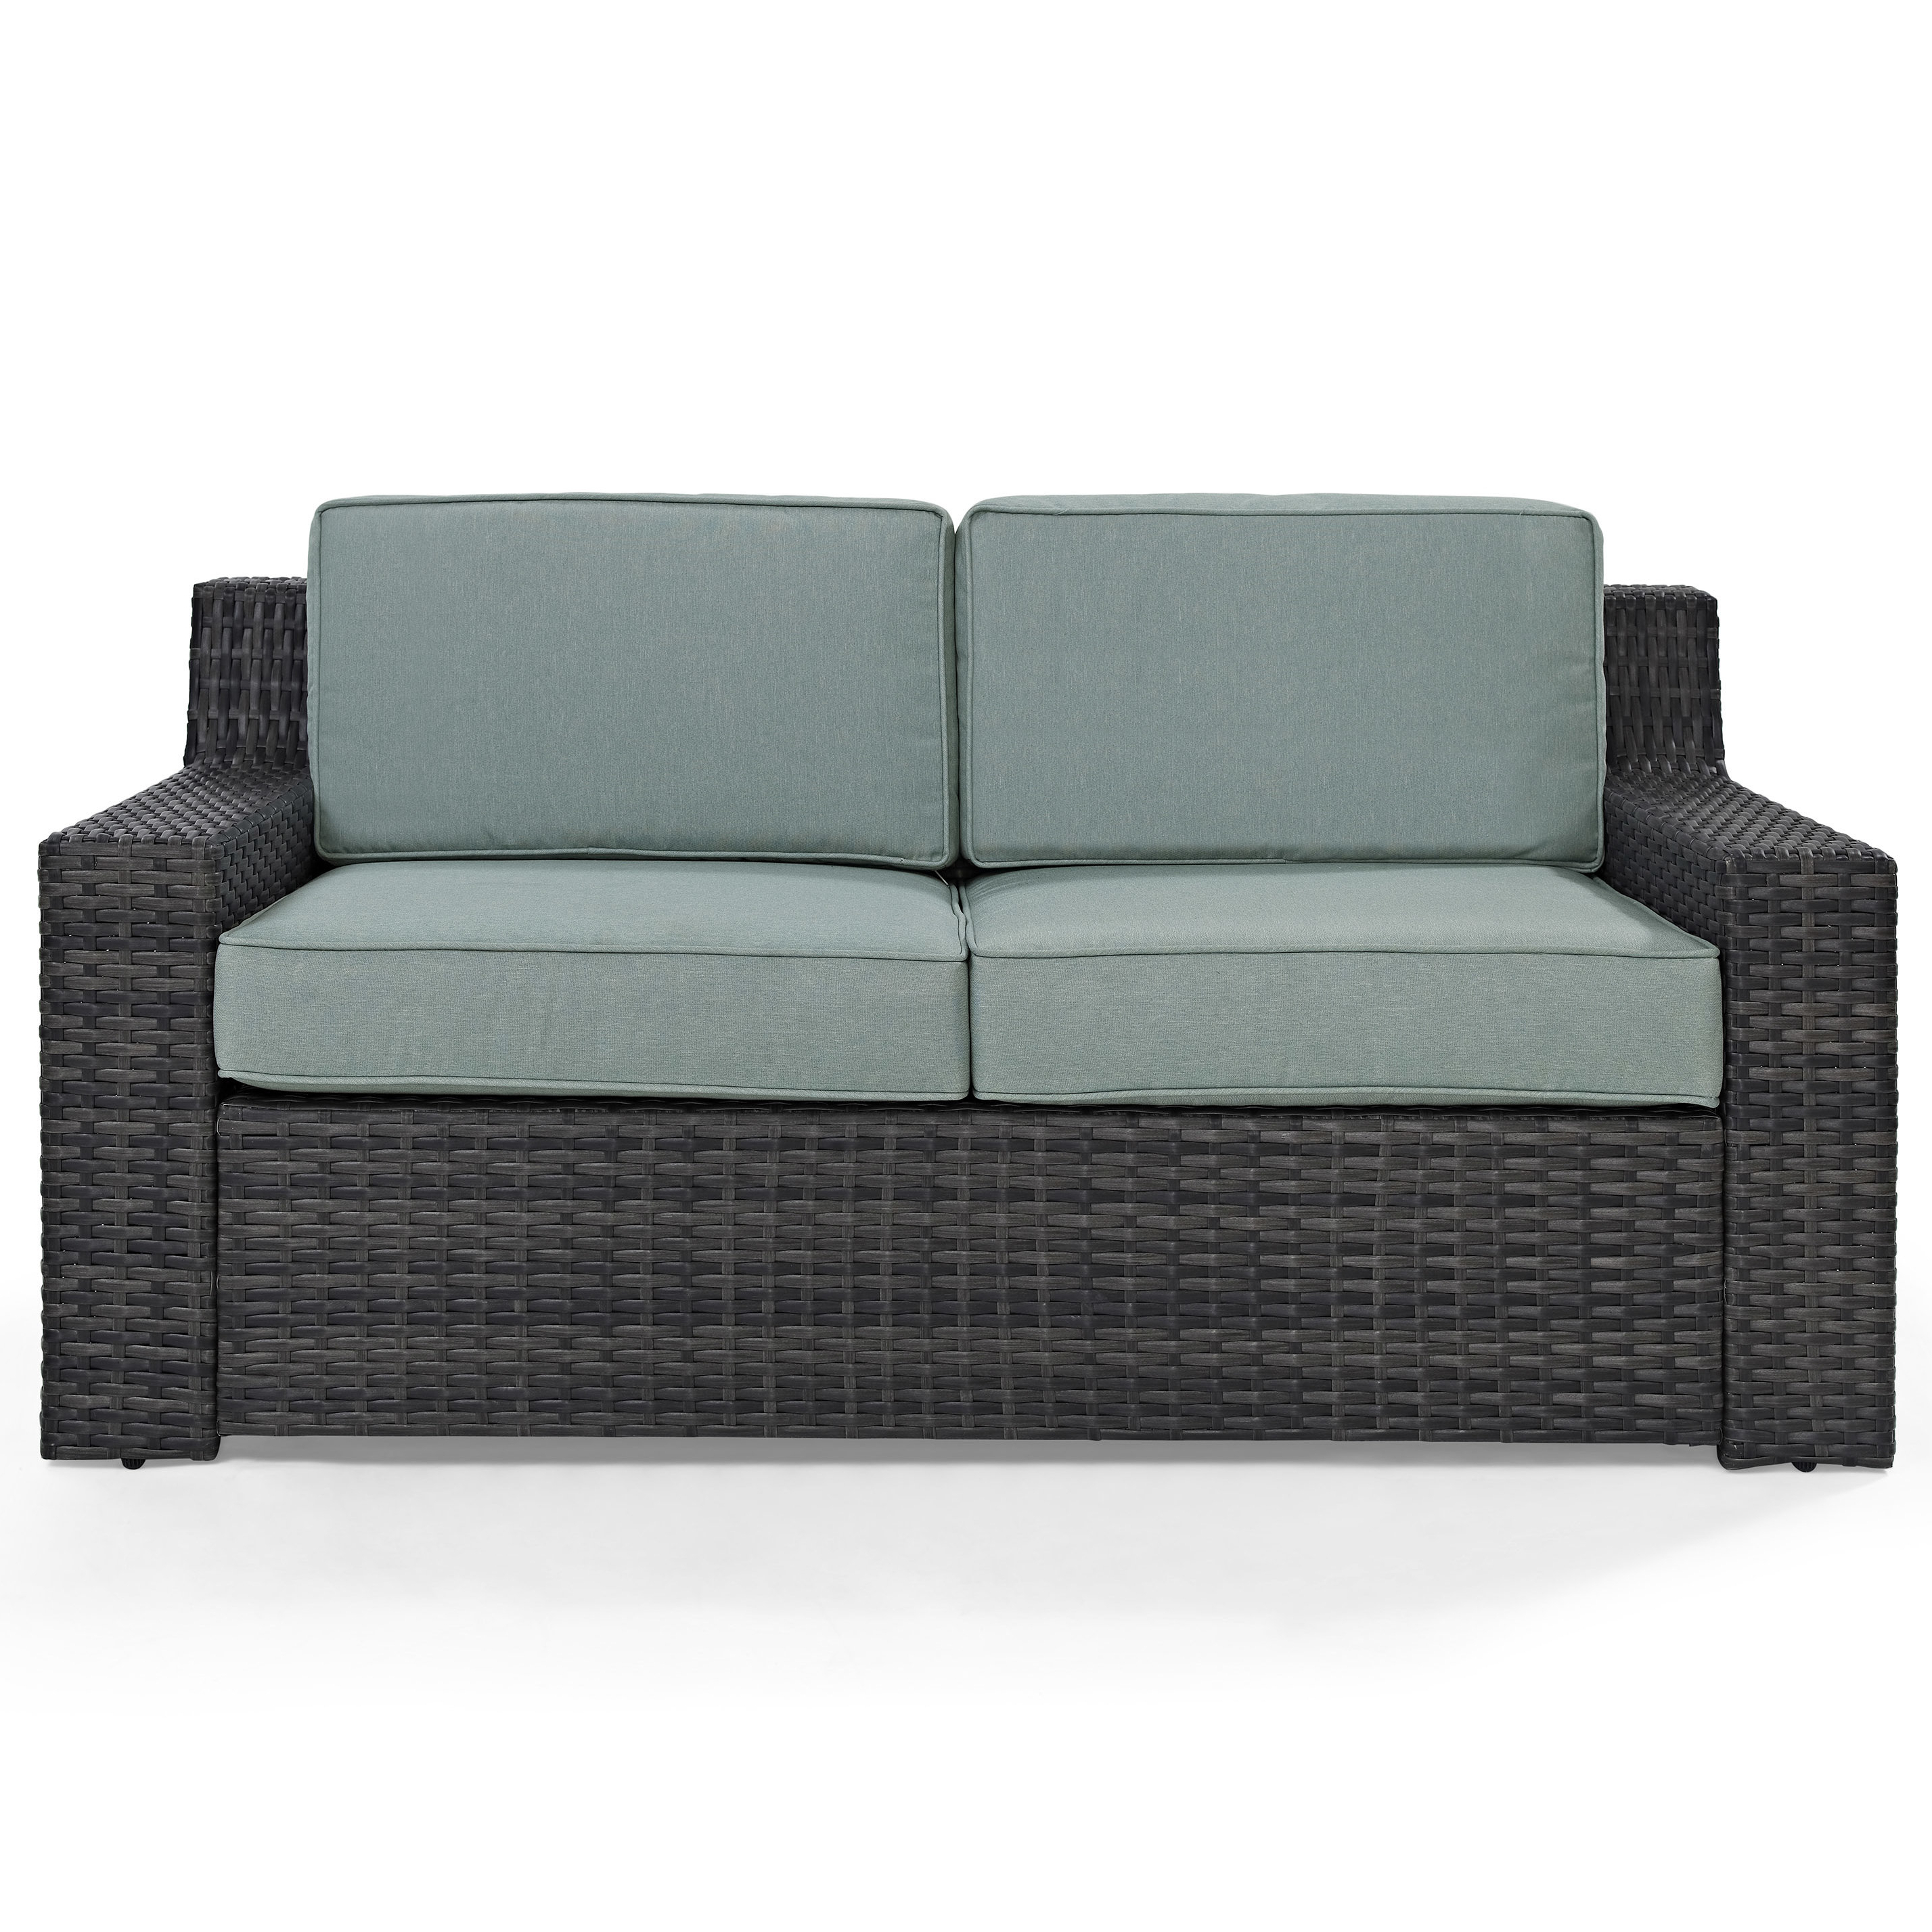 Mullenax Outdoor Loveseats With Cushions Throughout 2019 Linwood Loveseat With Cushions (View 9 of 20)